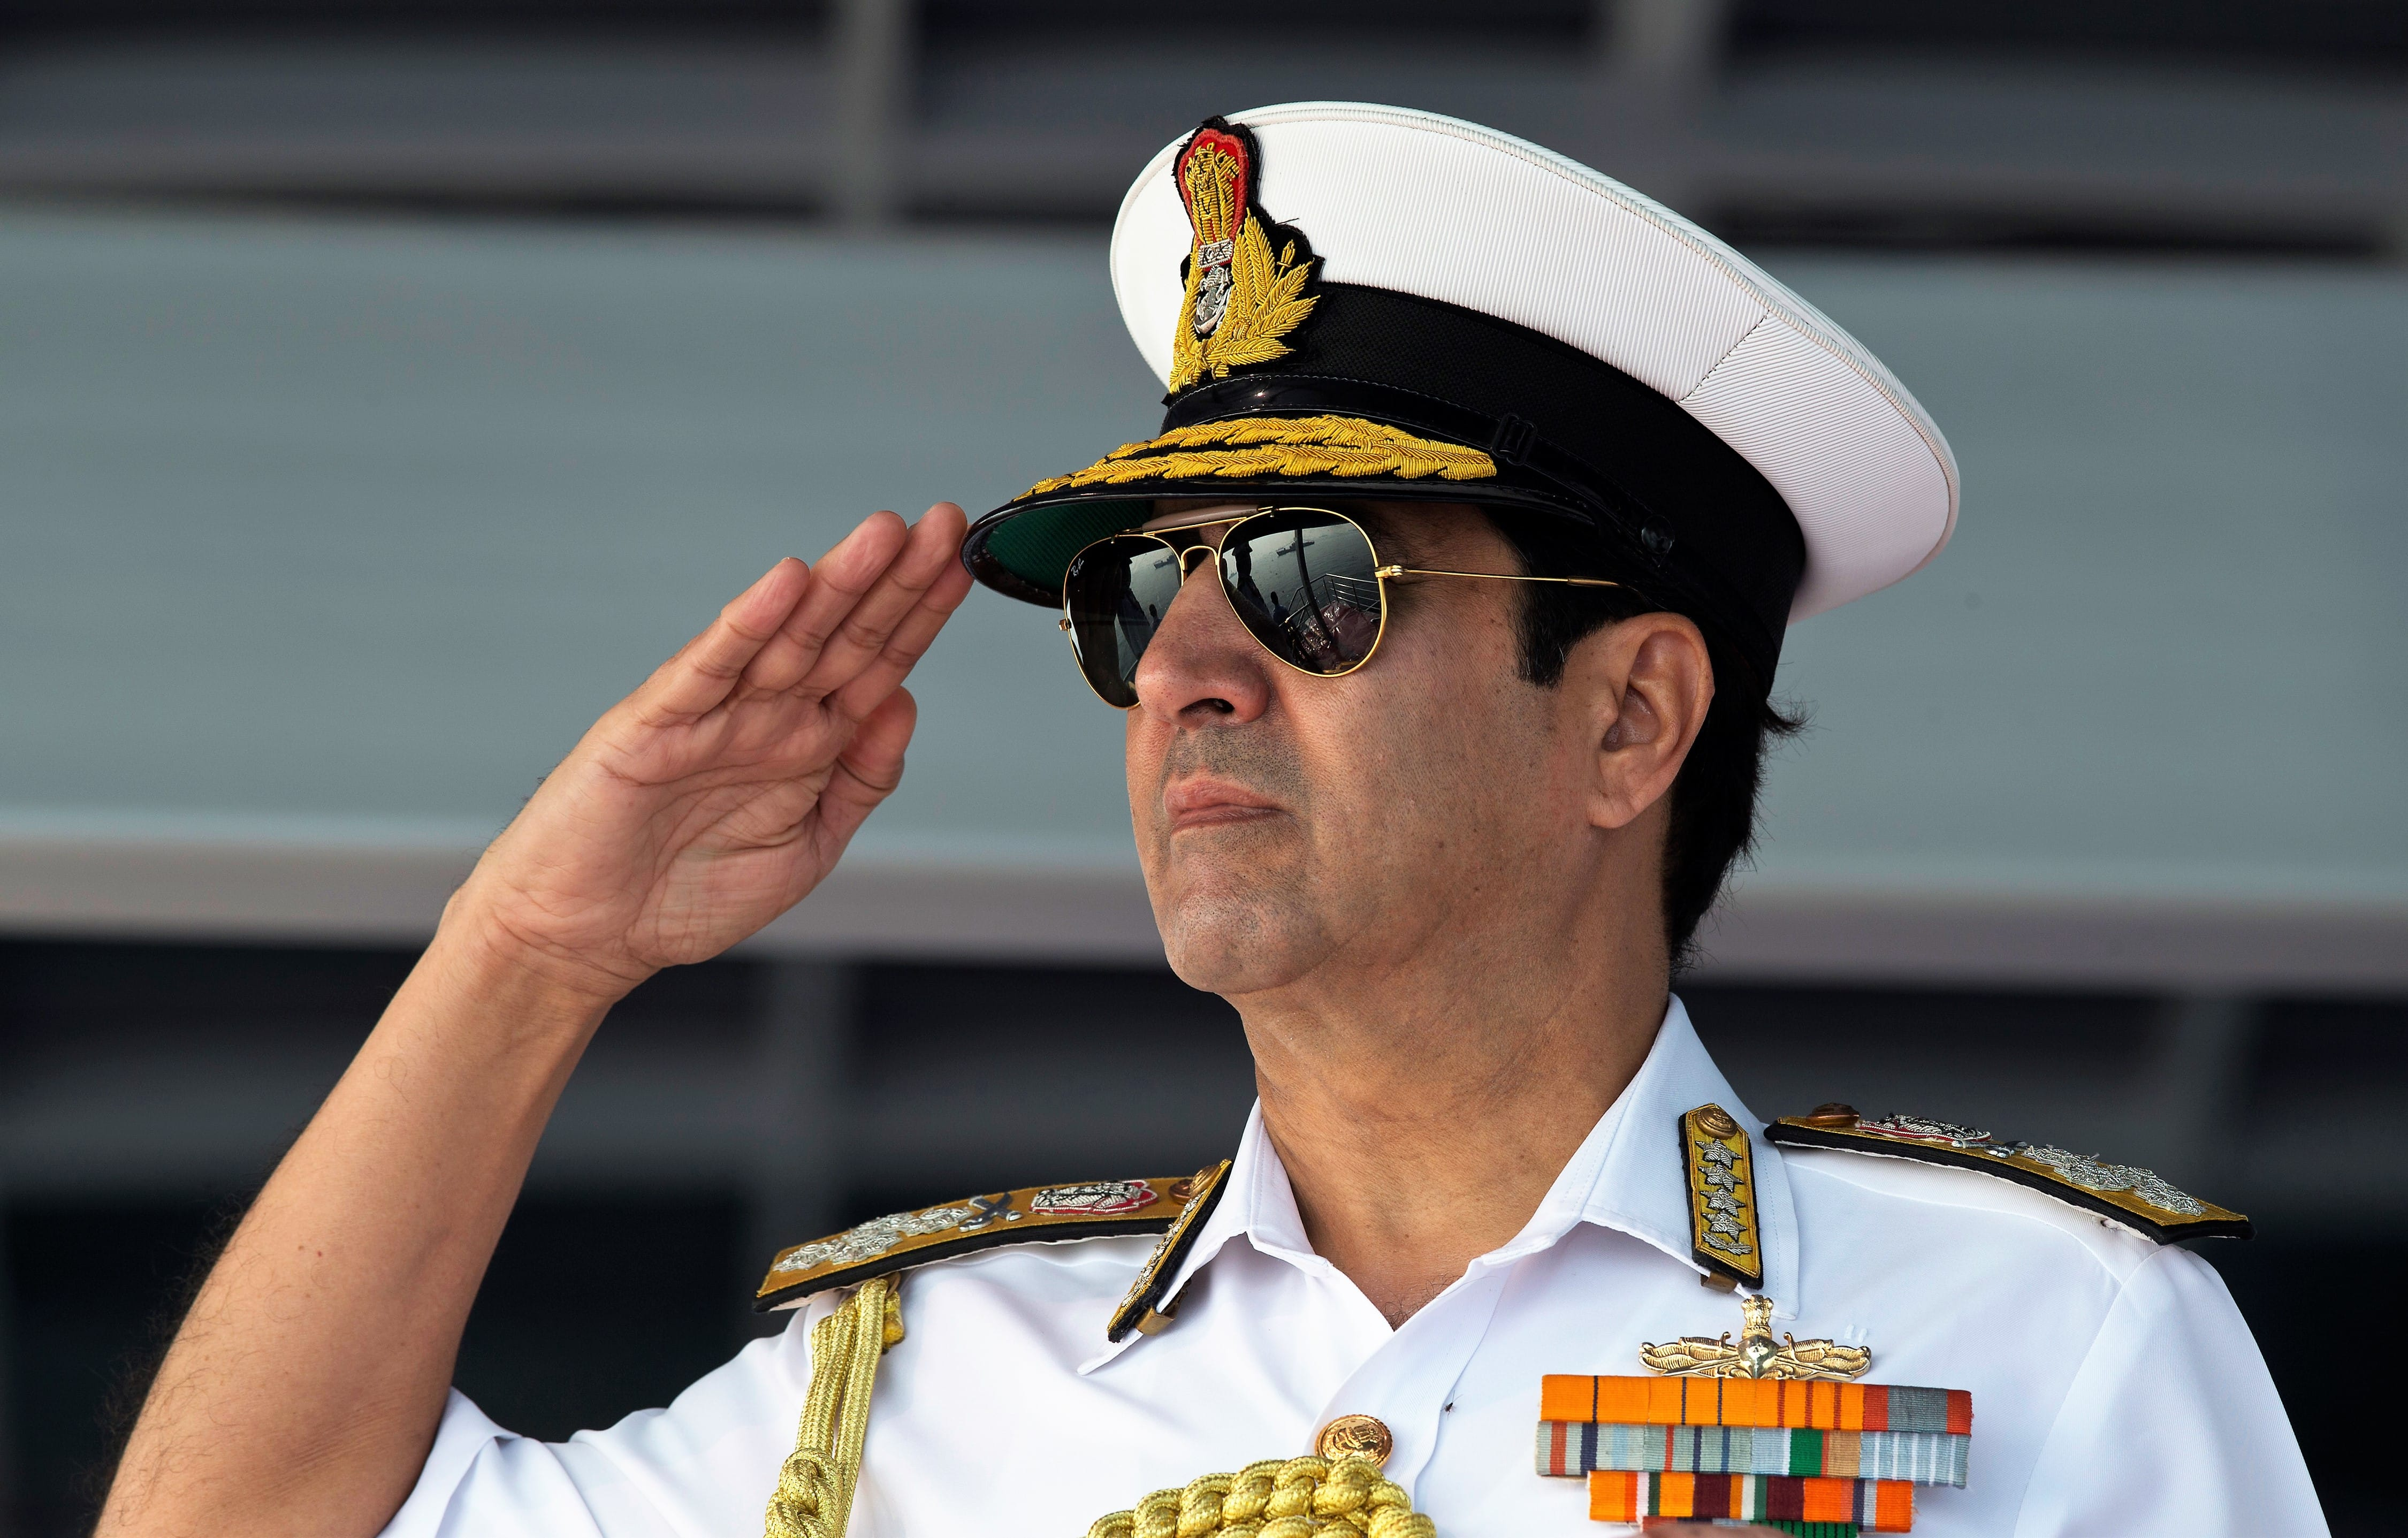 India's Middle Eastern Naval Diplomacy